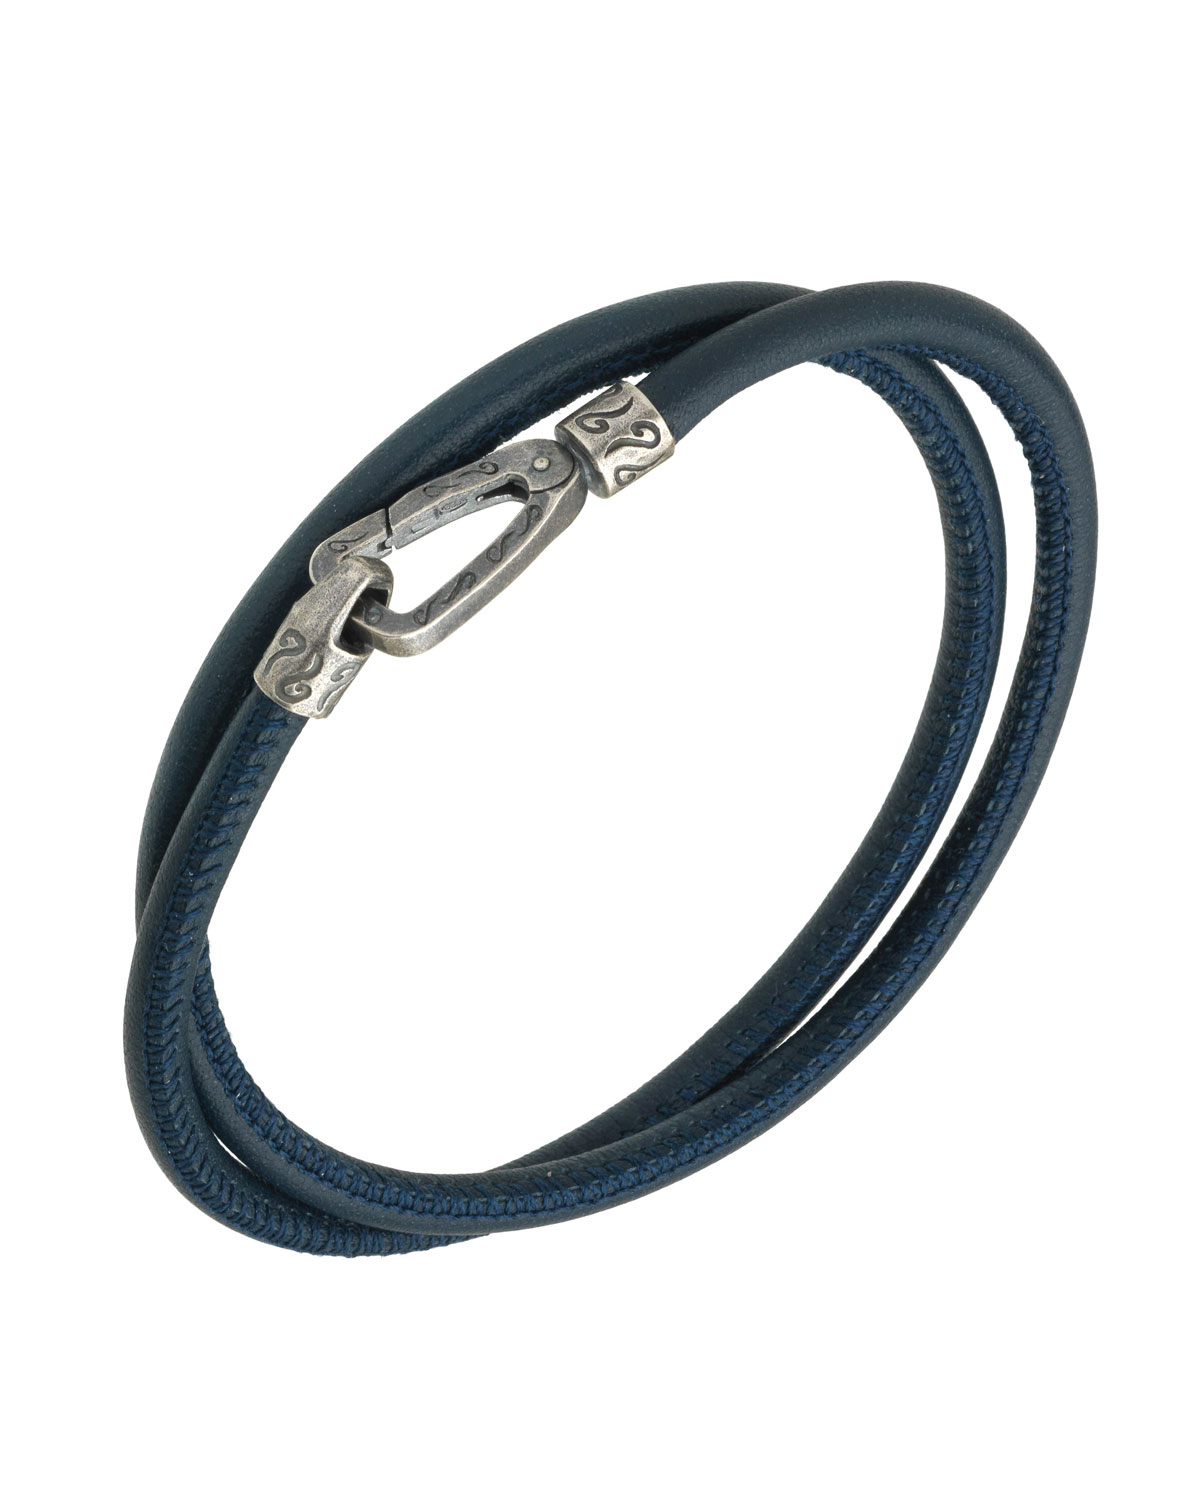 MARCO DAL MASO MEN'S LEATHER DOUBLE-WRAP BRACELET, BLUE